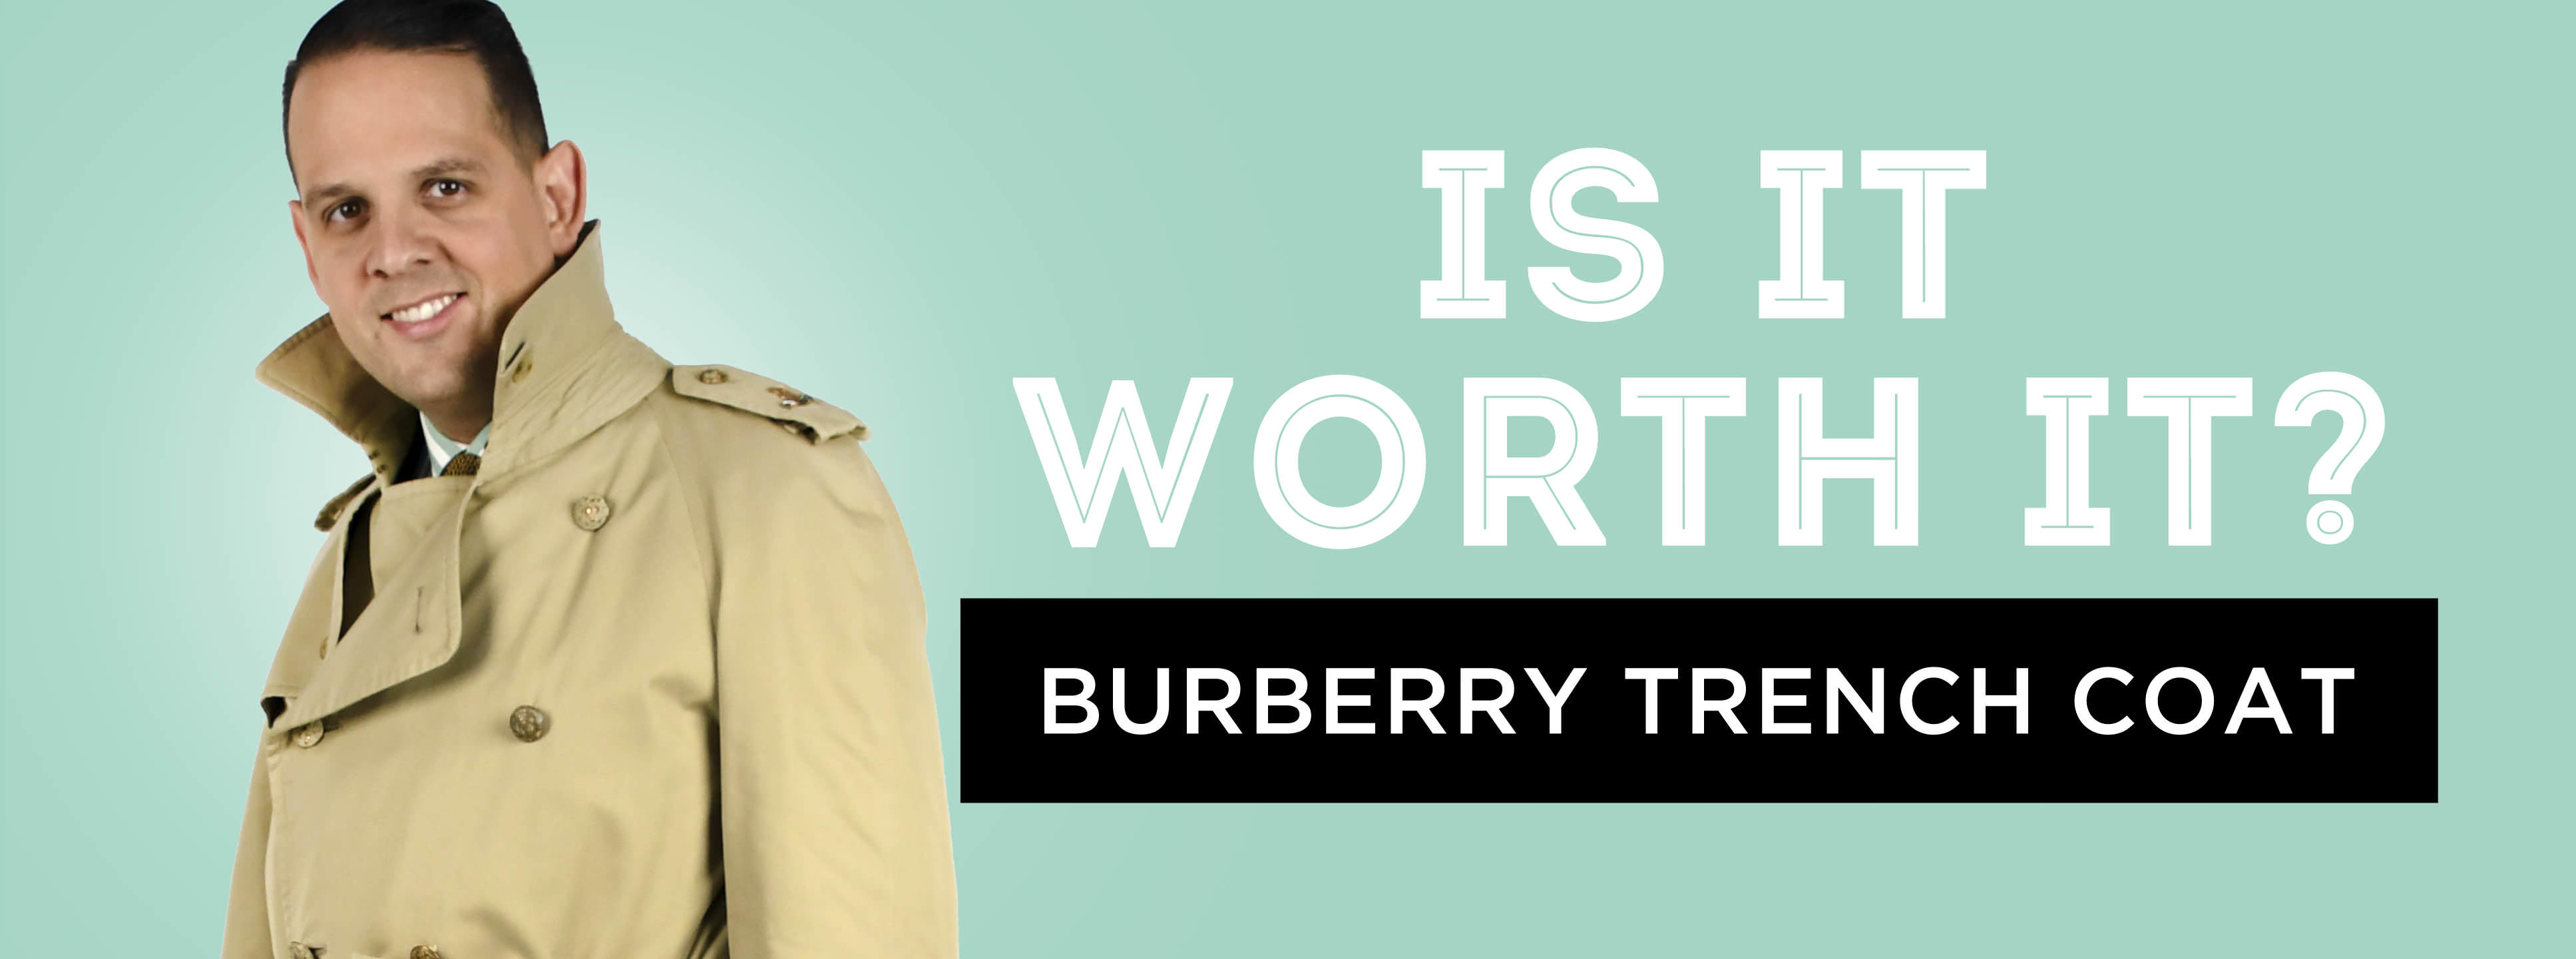 f26a735cad1 Is It Worth It  The Burberry Trench Coat — Gentleman s Gazette